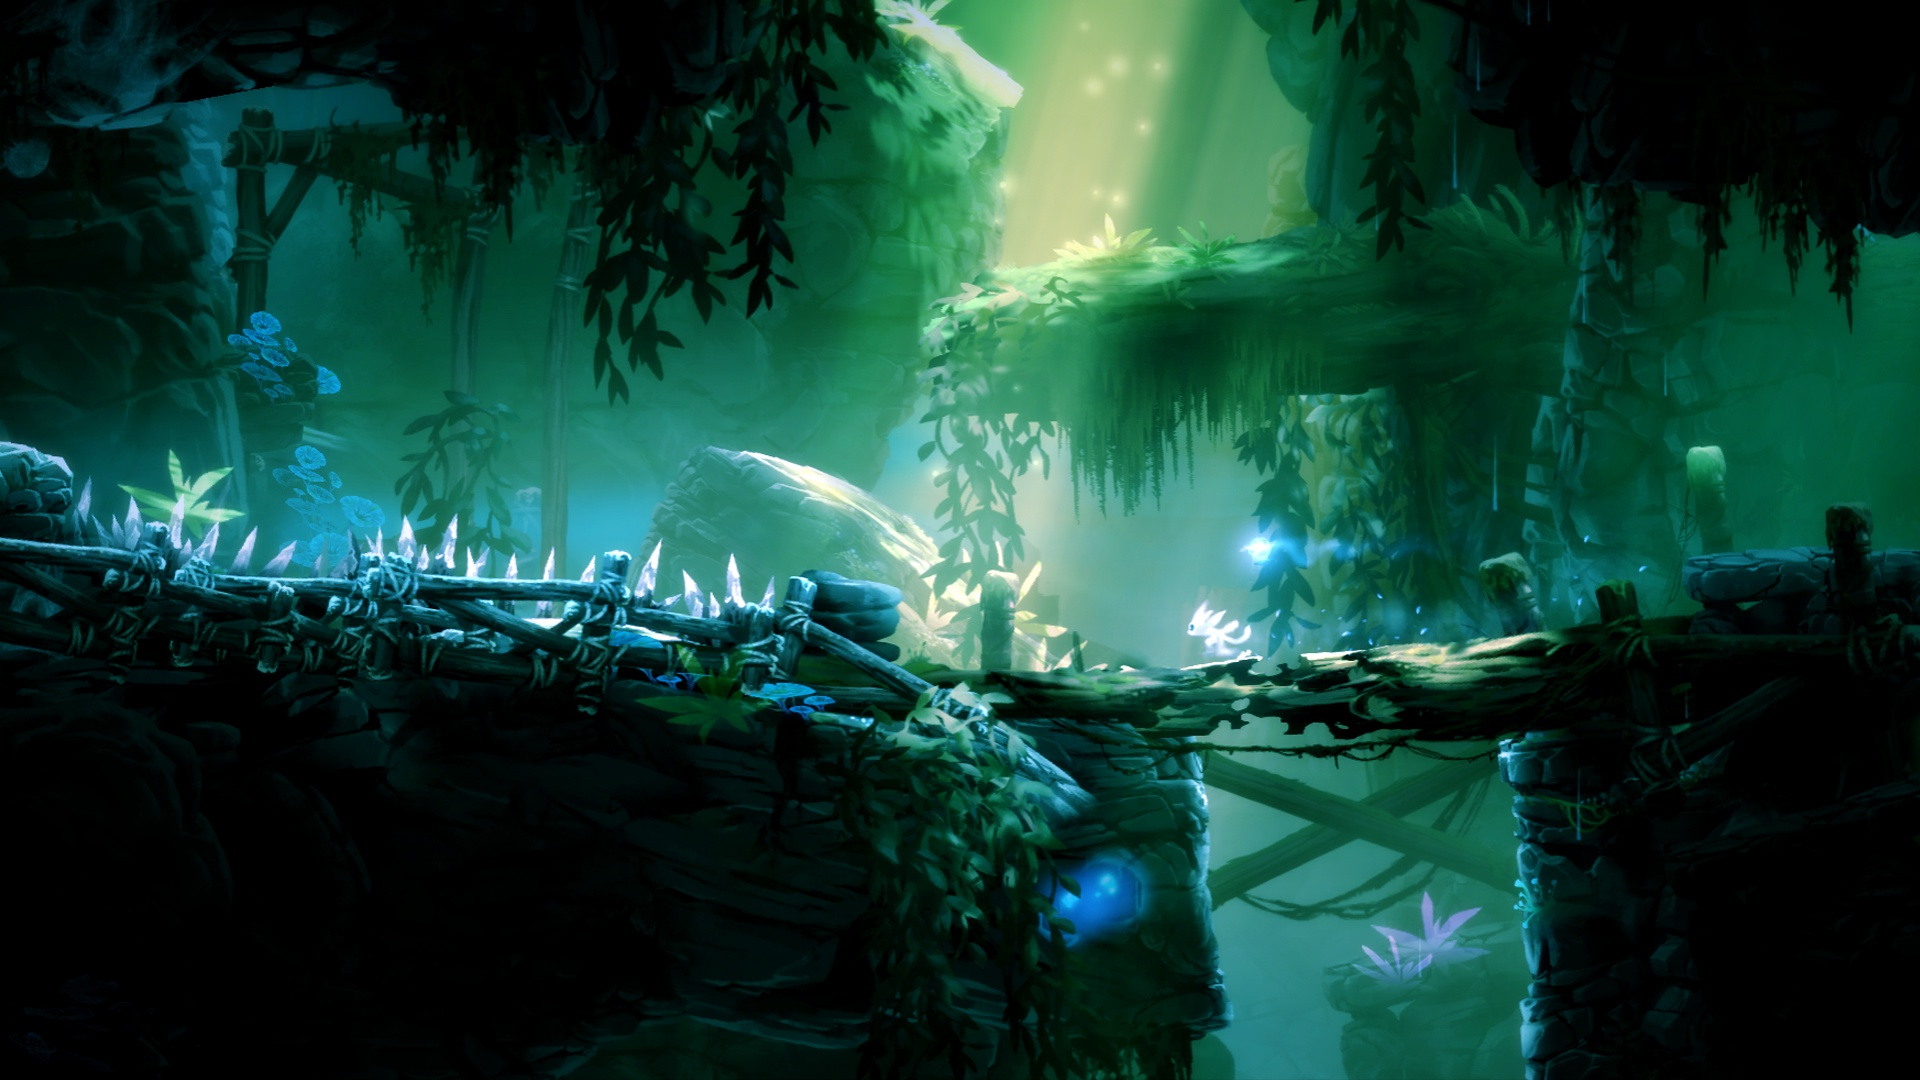 Ori Character Ori And The Blind Forest Hd Wallpaper 2180410